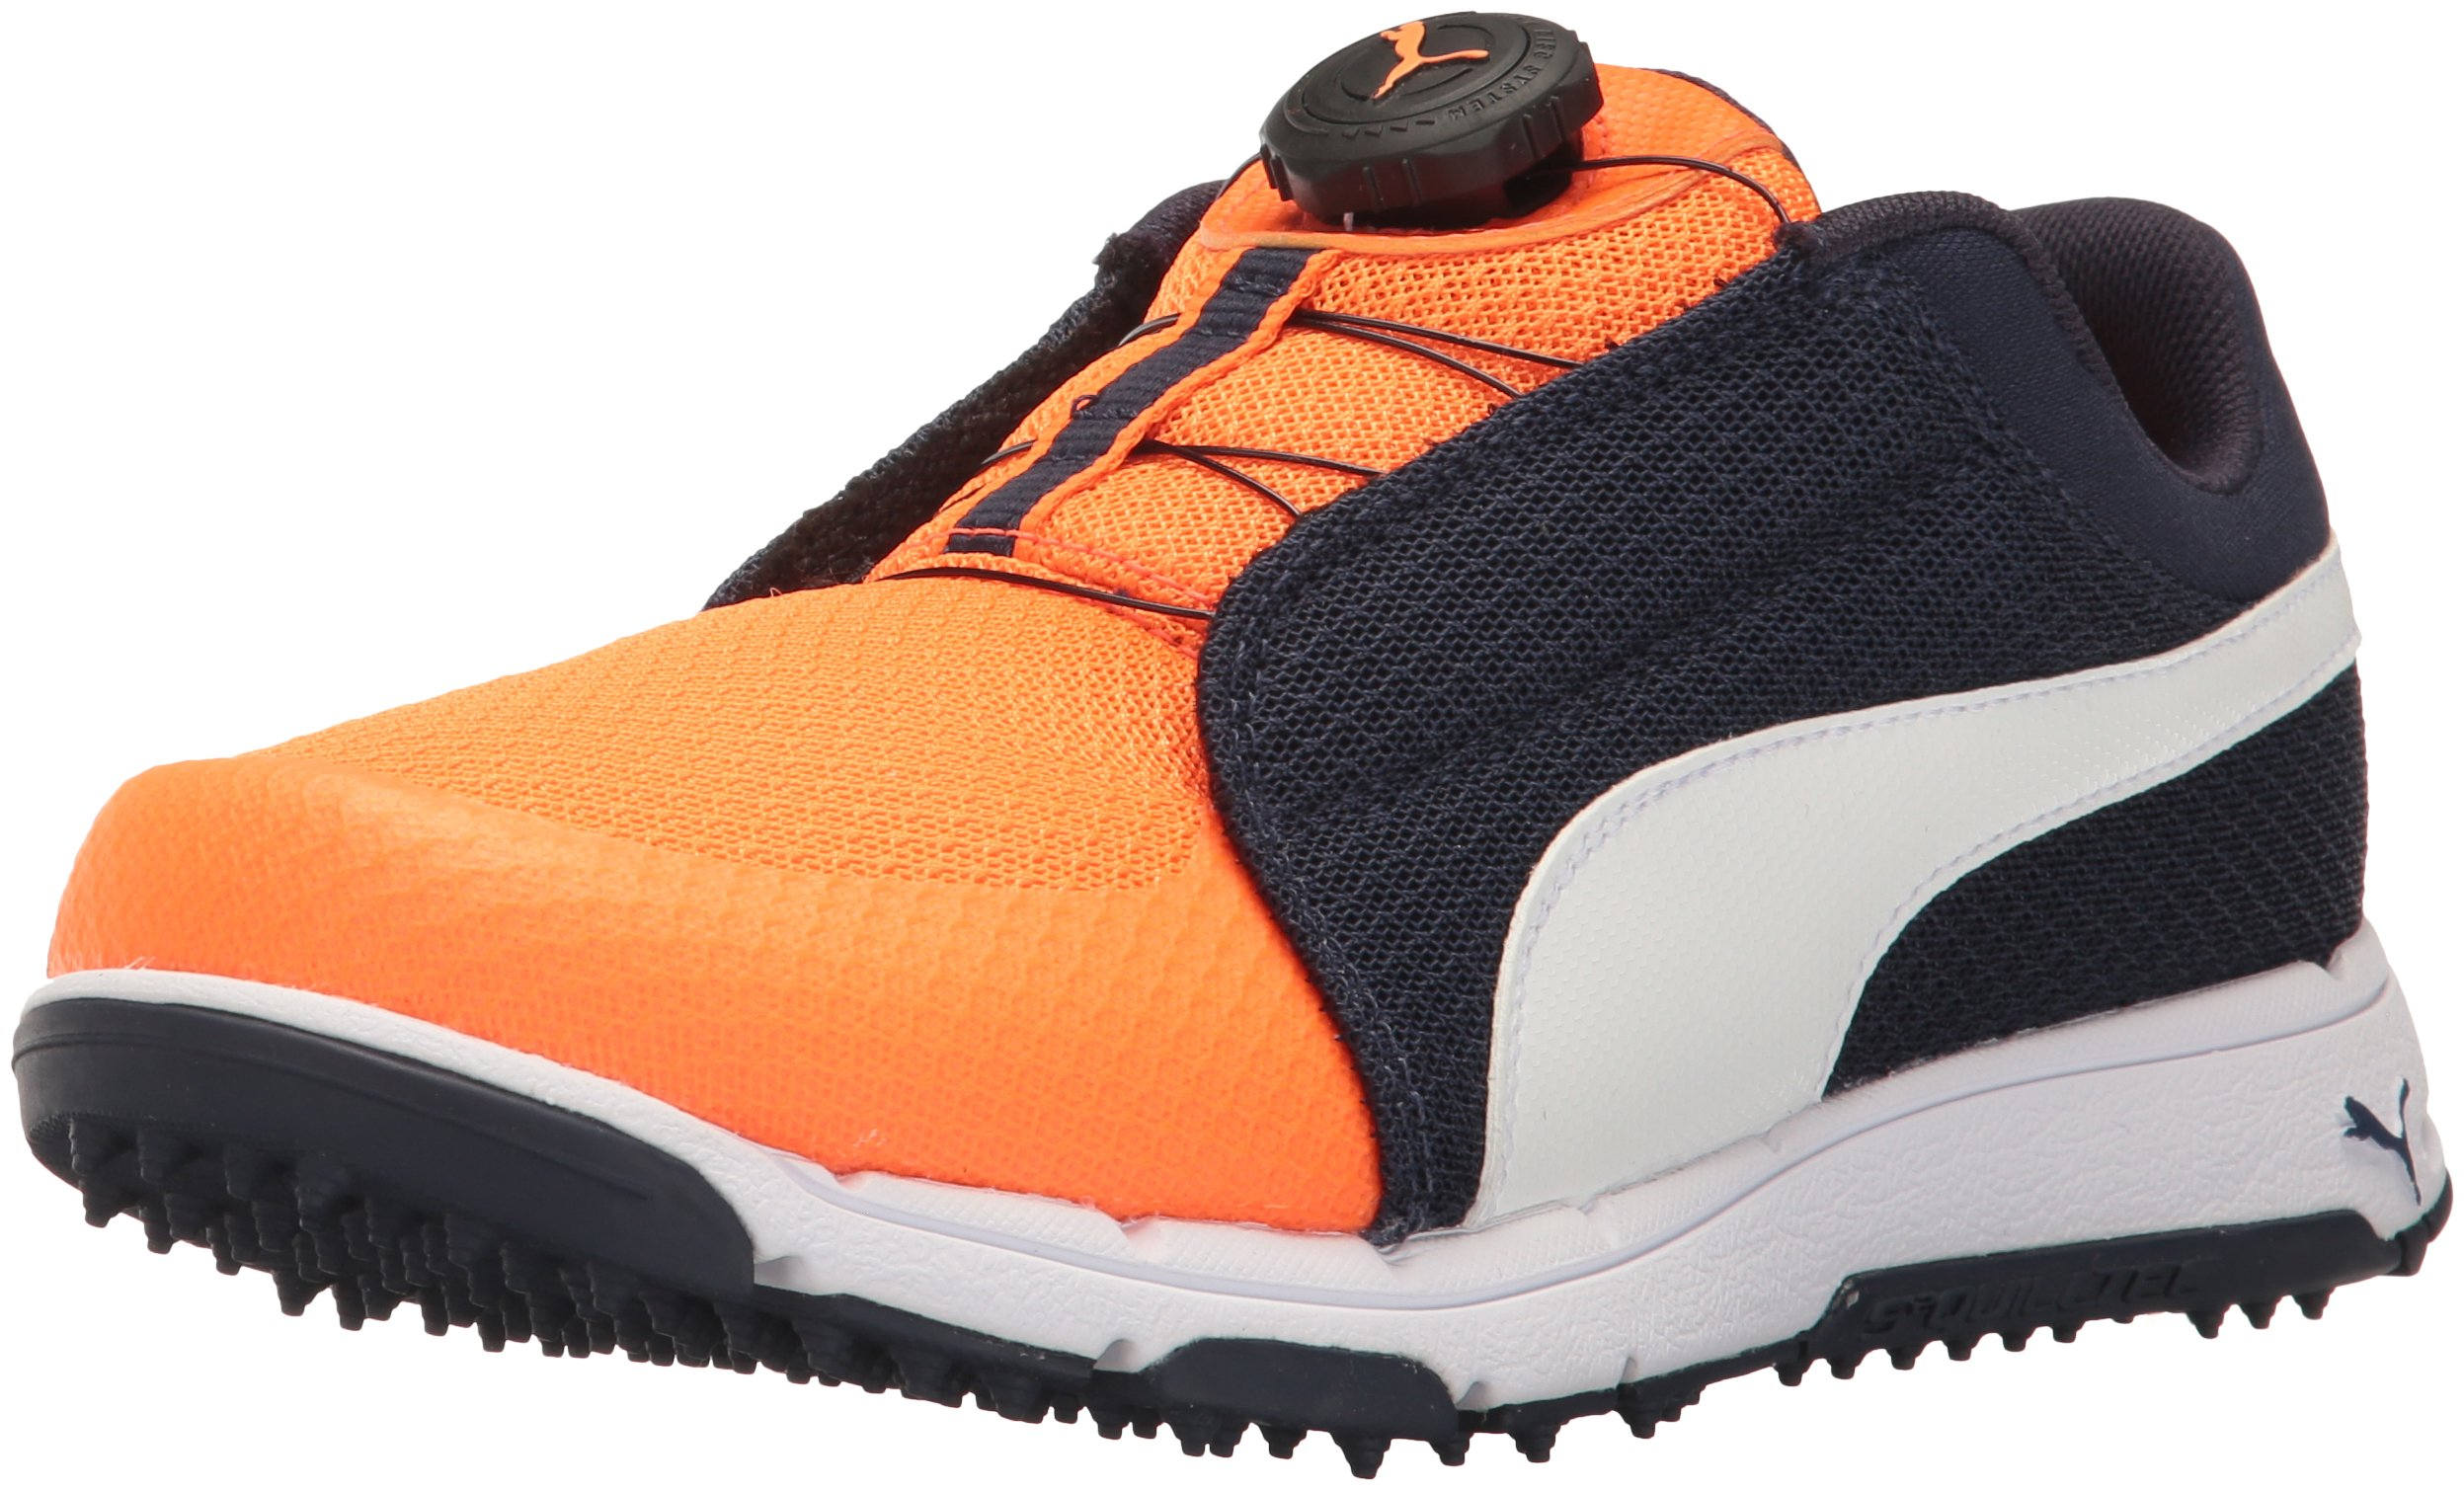 PUMA Golf Unisex-Kids Grip Sport JR. Disc Golf Shoe, Peacoat White-Orange Clown Fish, 6 Medium Youth US Big Kid